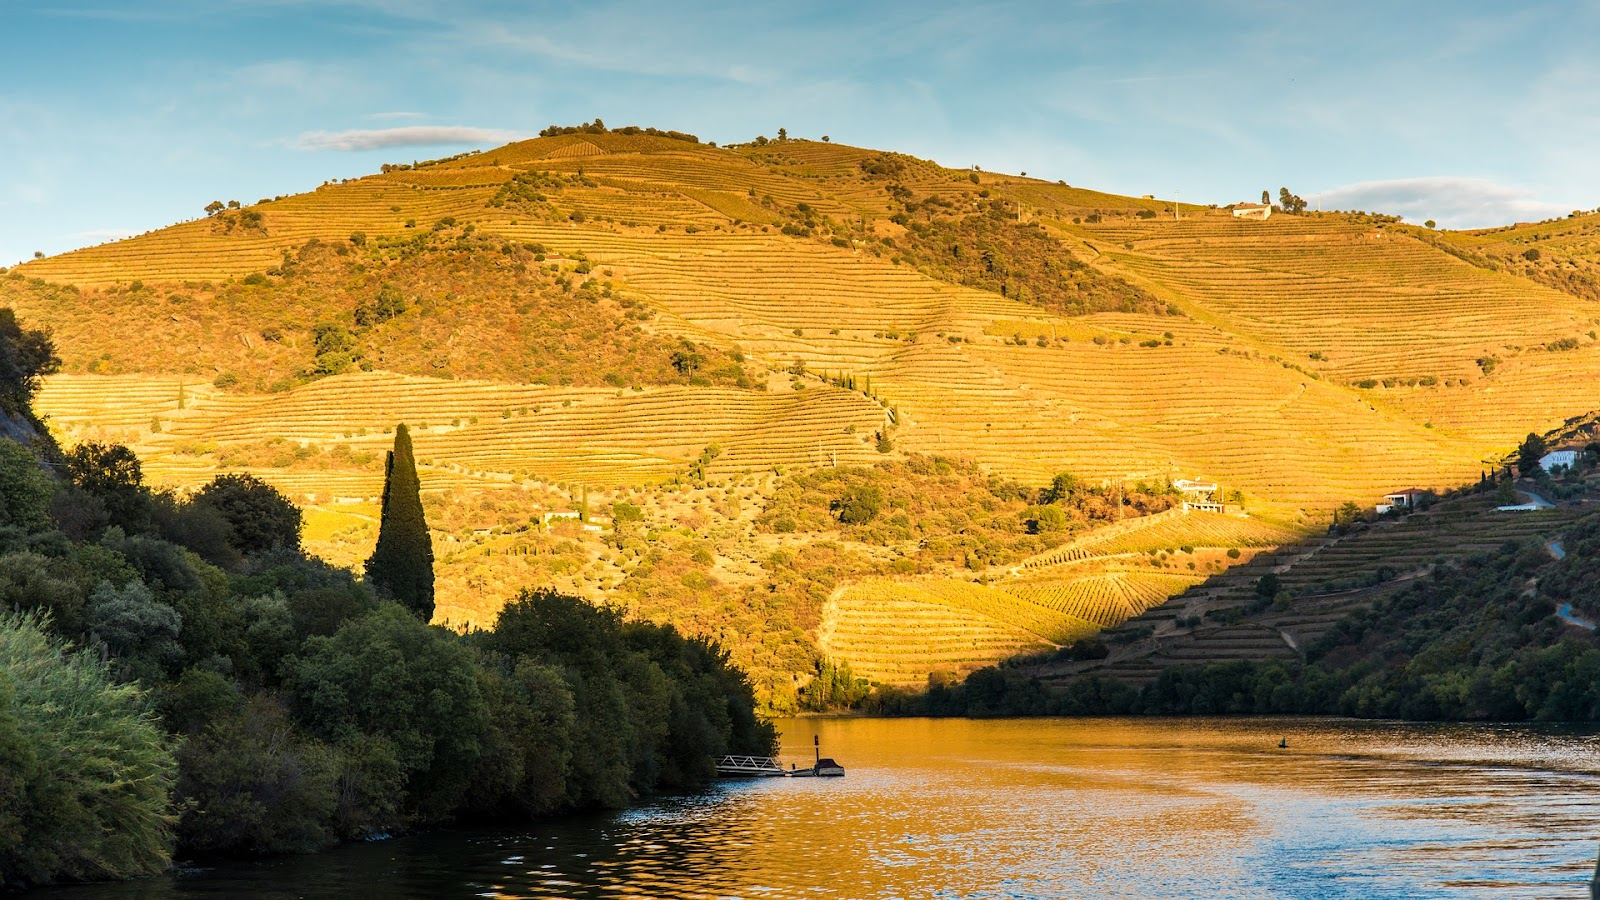 Sunbathed vineyard hill standing above Douro river, Portugal's wine regions